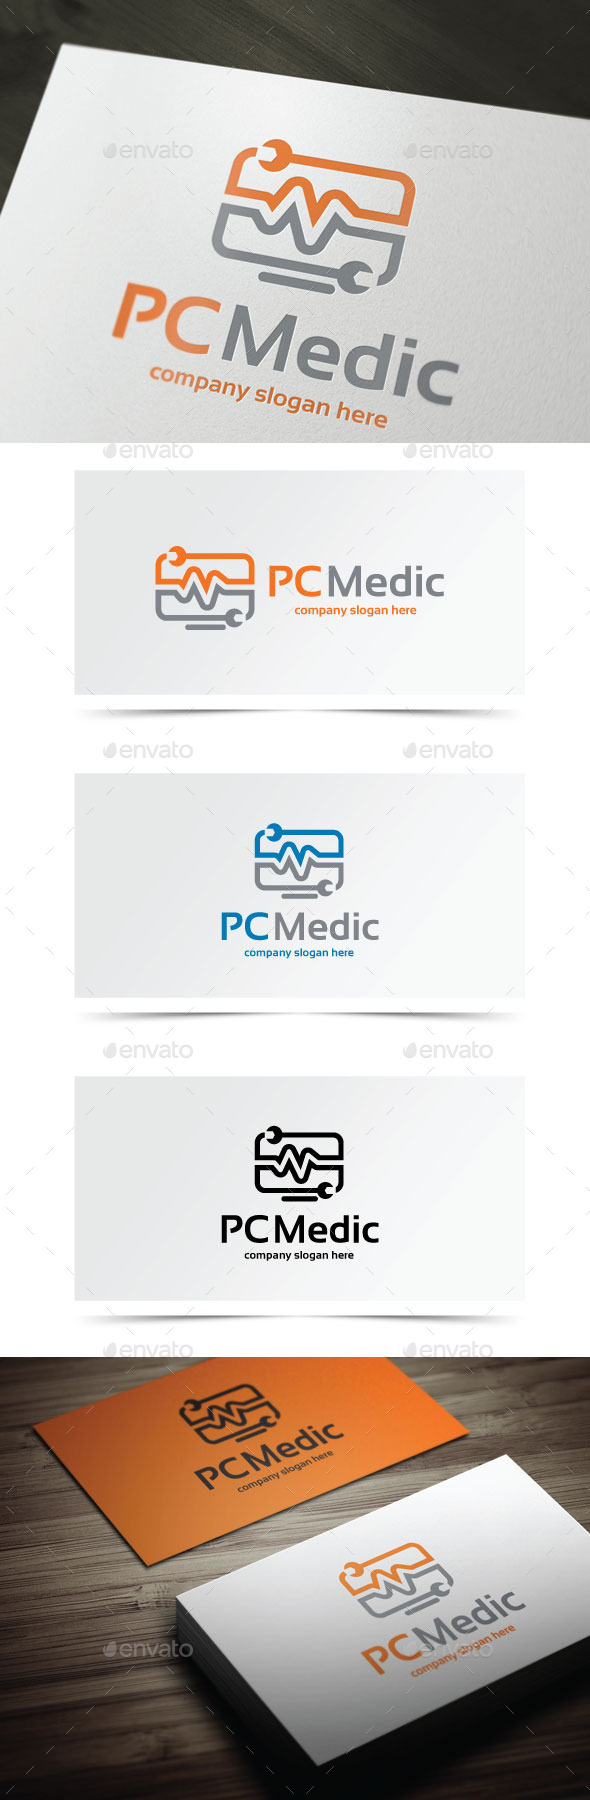 GraphicRiver PC Medic 10638003